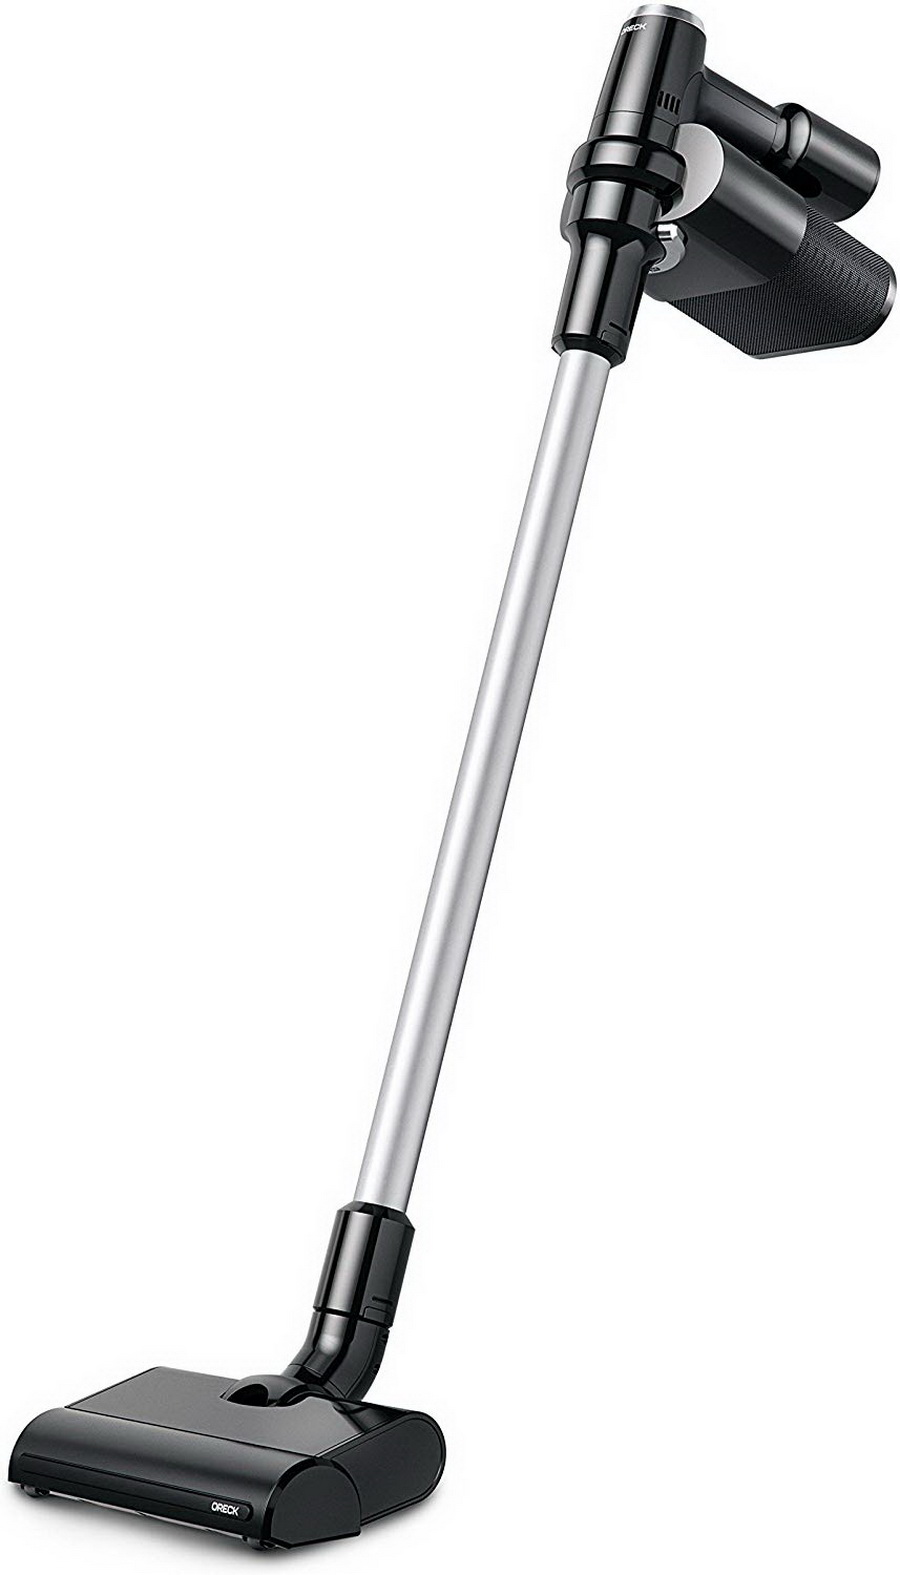 Oreck Cordless Vacuum with POD Technology (Black or White)